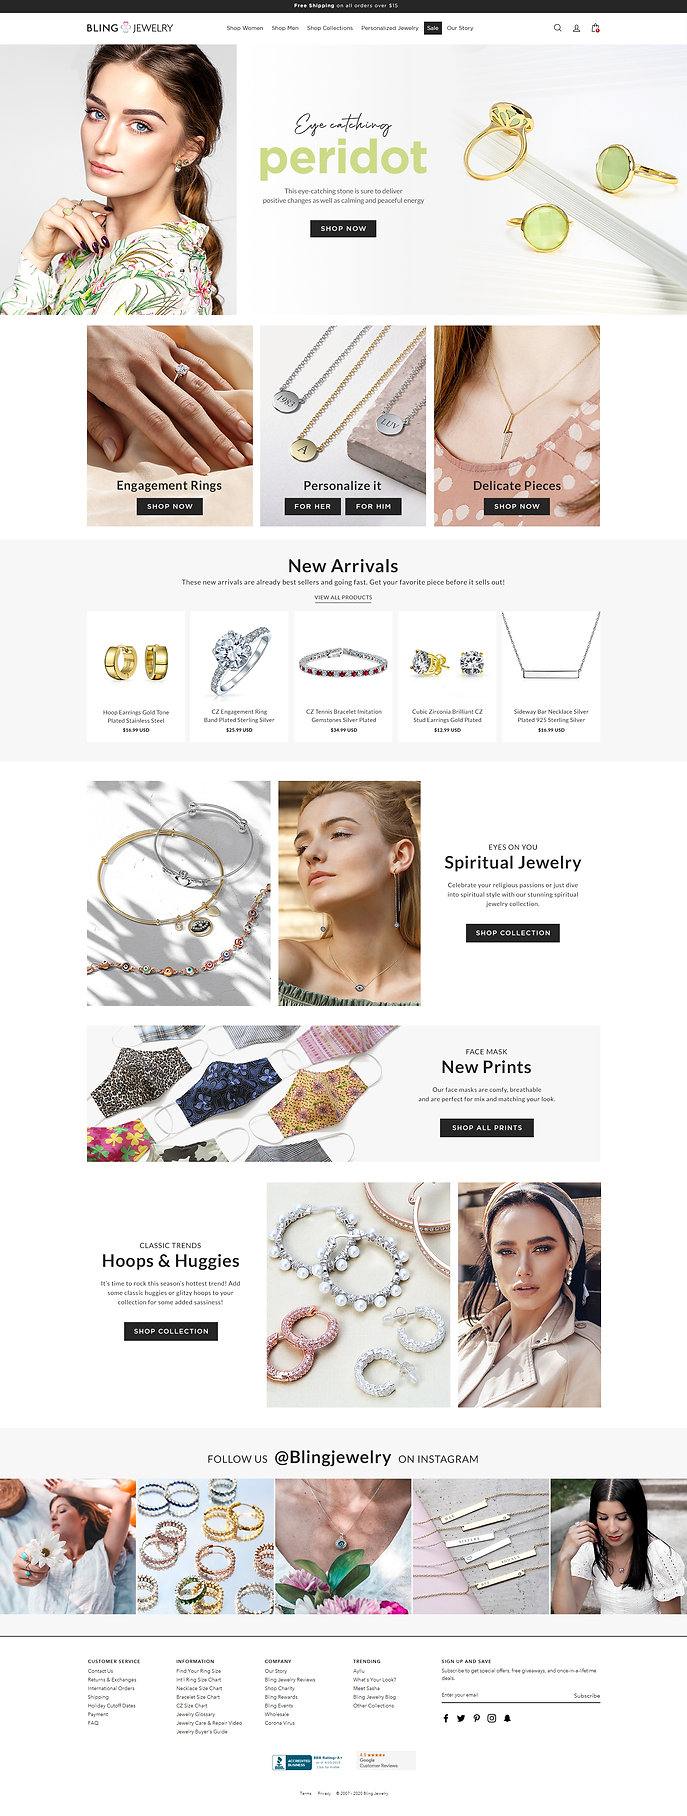 bling-website-mockup-Final.jpg